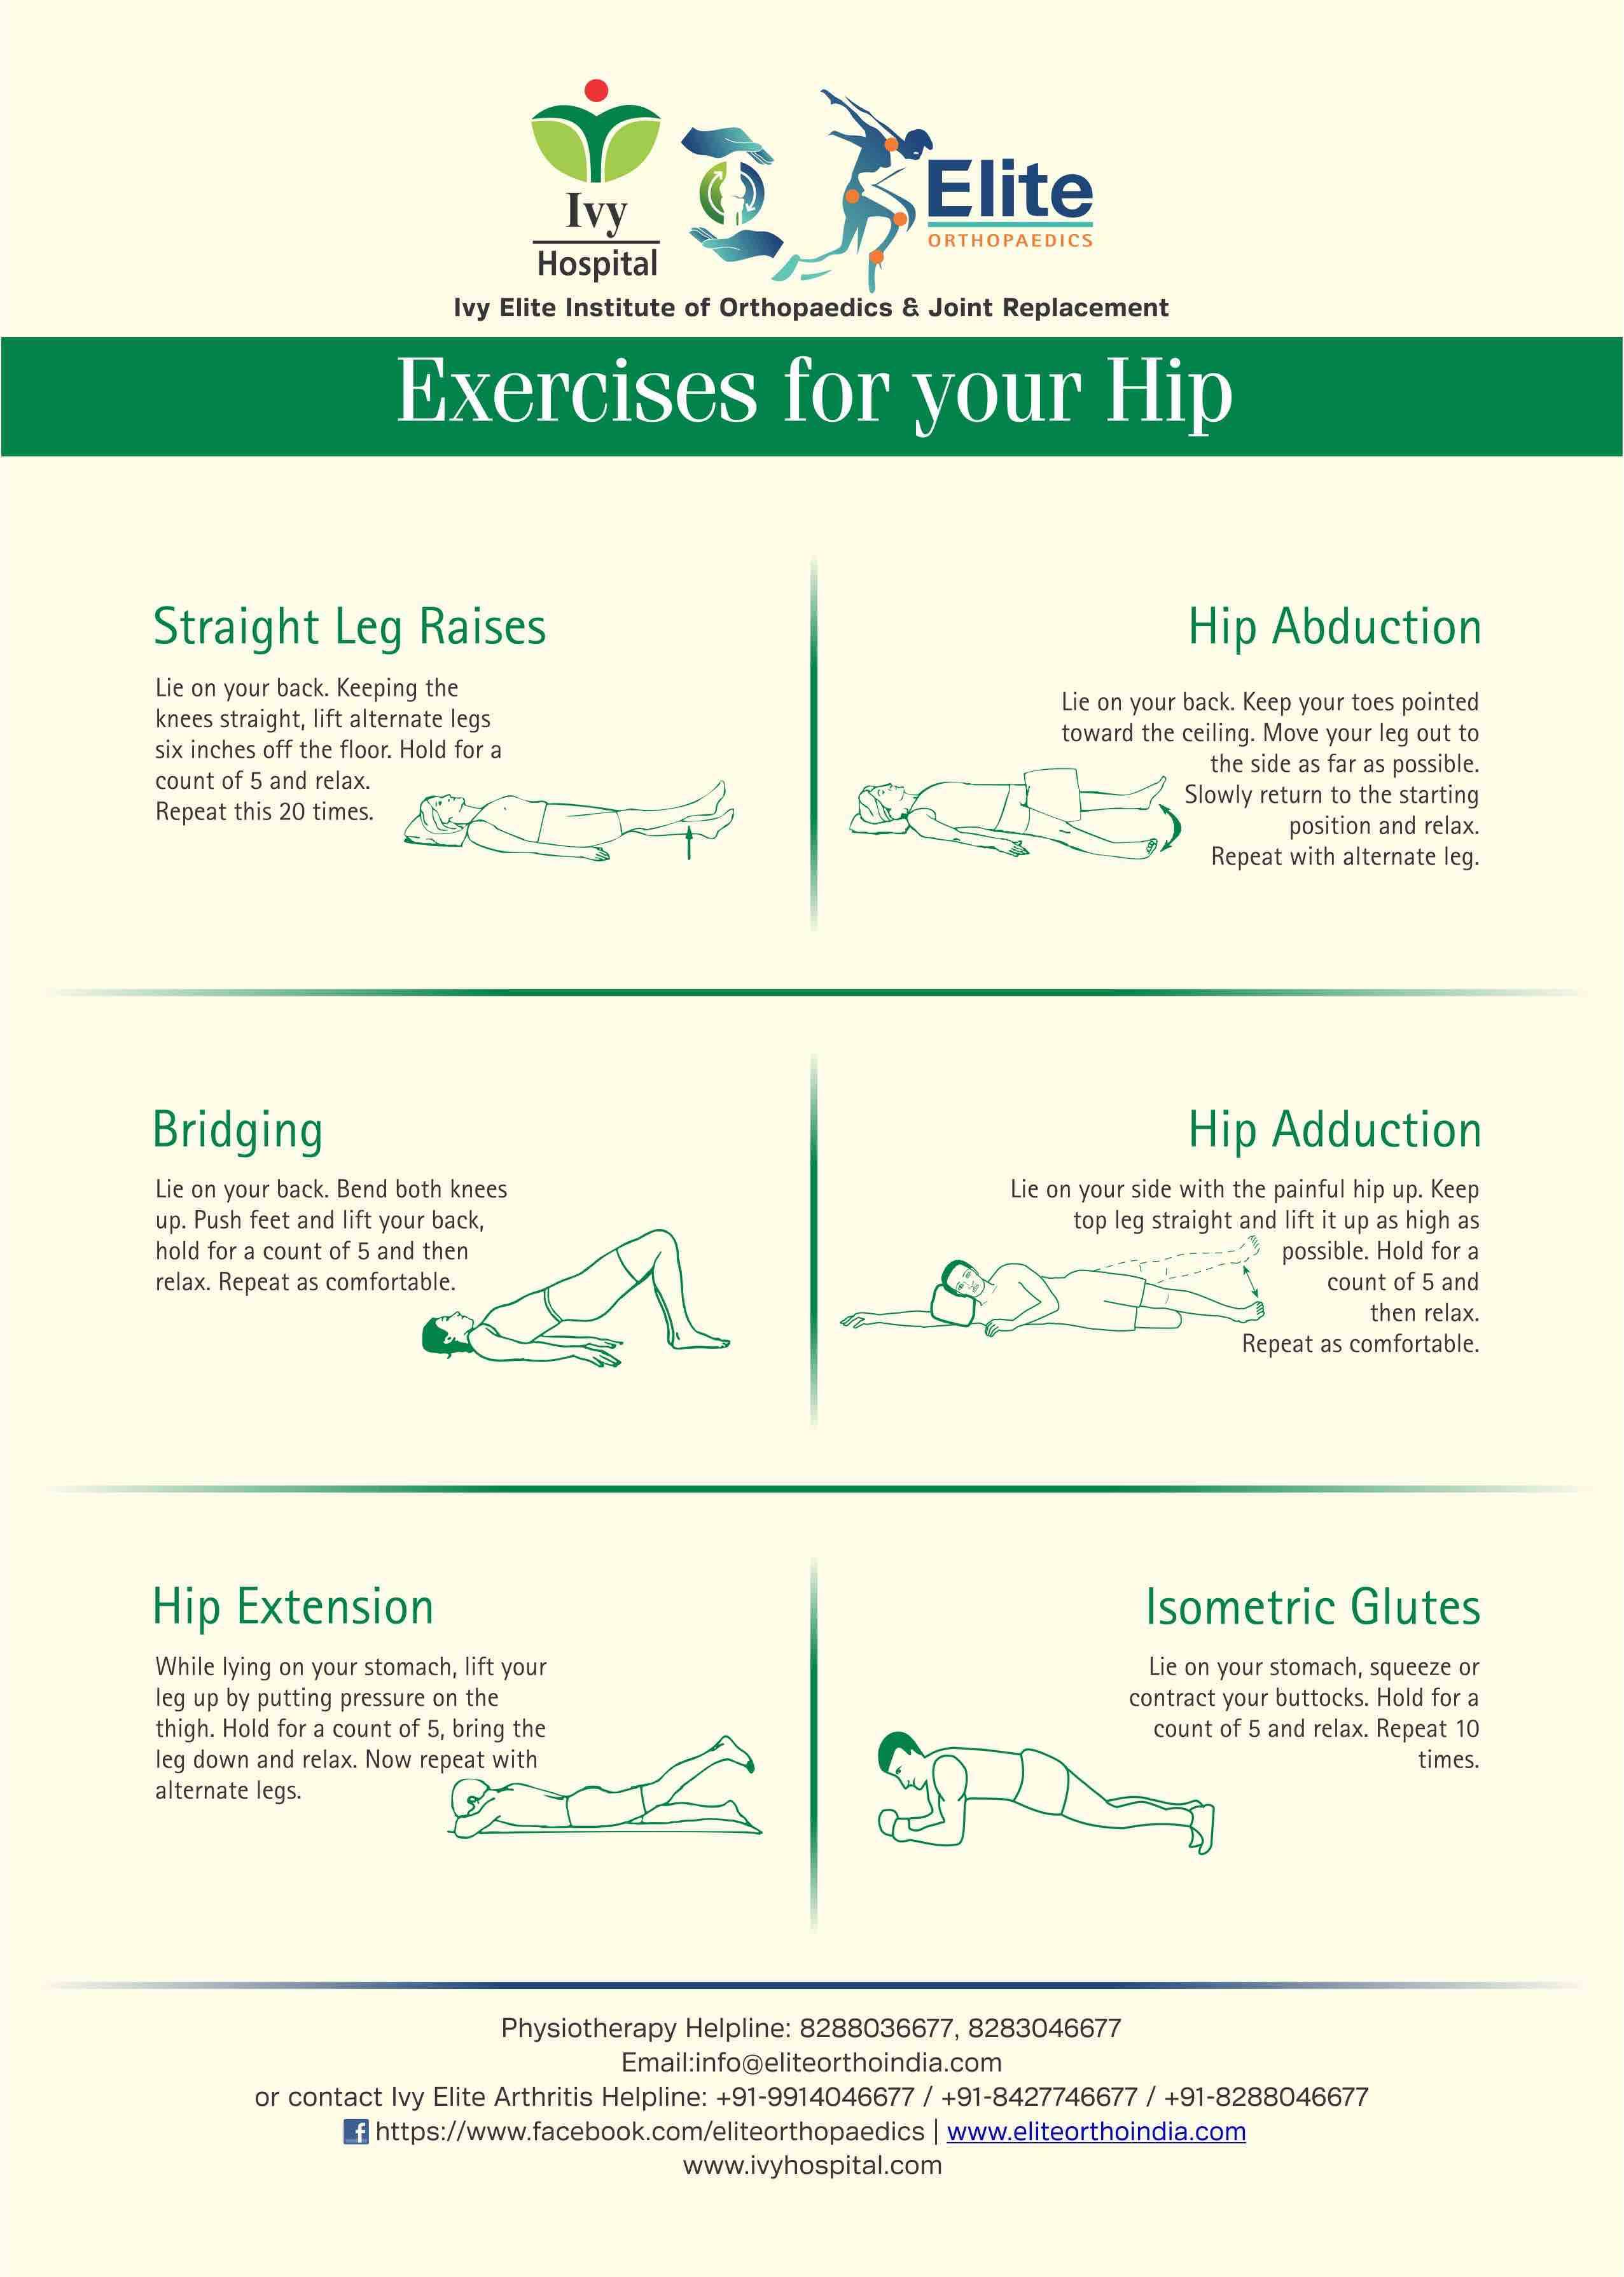 Exercise for Hip